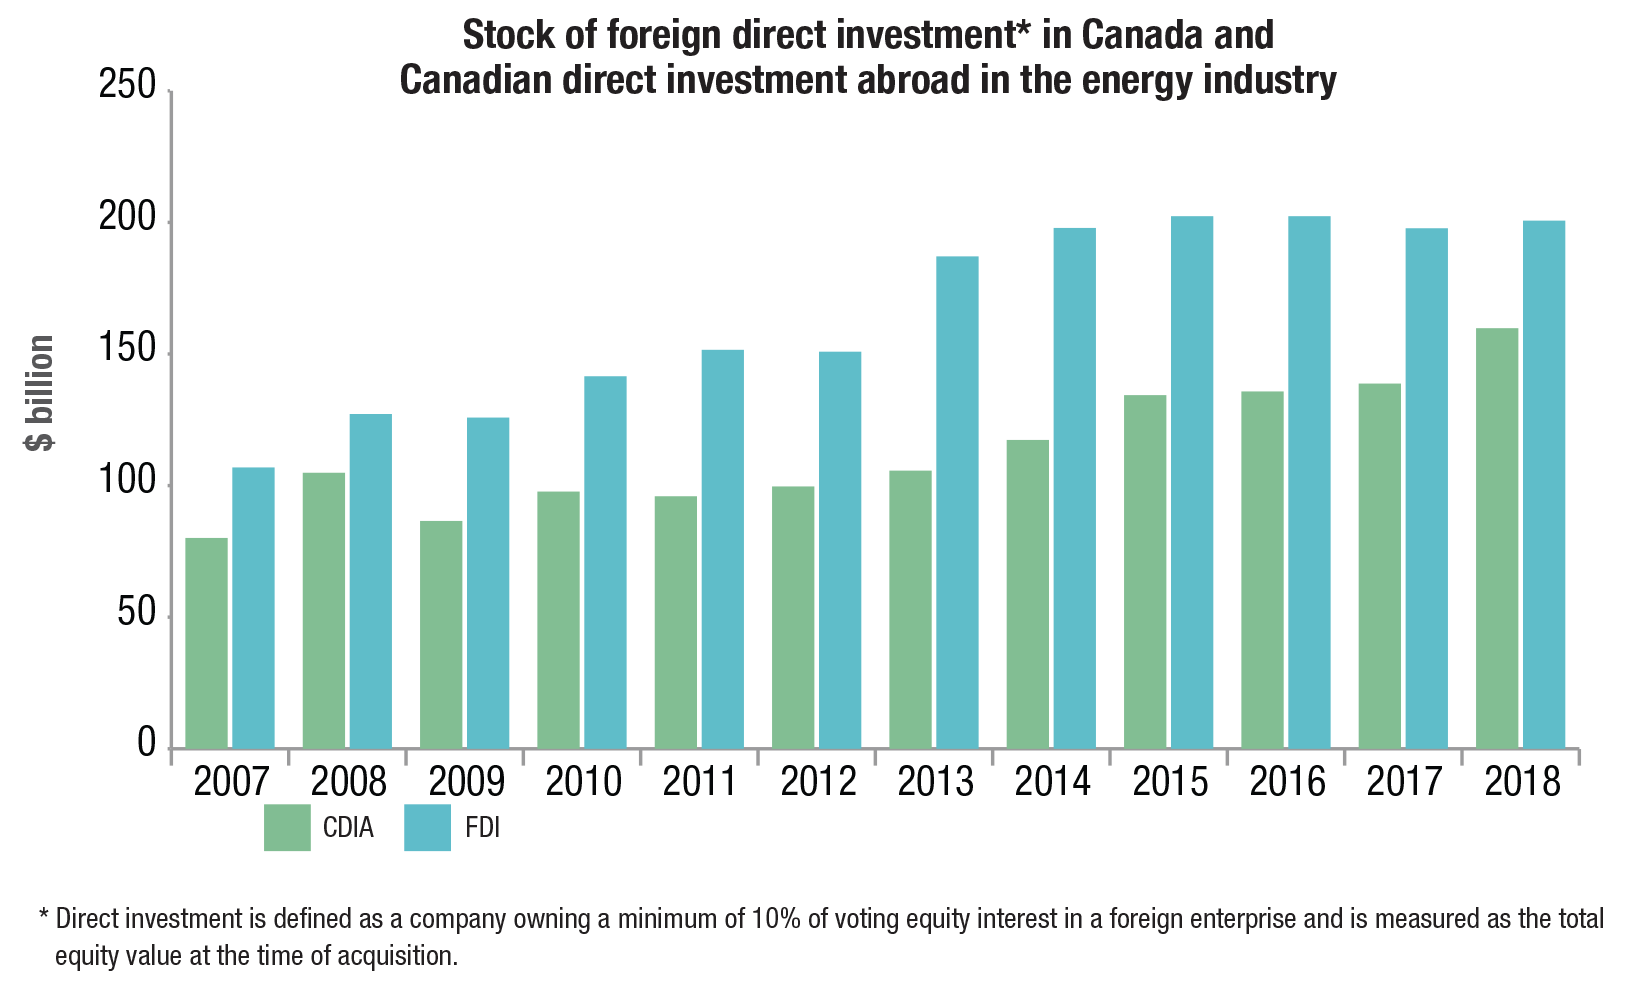 Stock of foreign direct investment in Canada